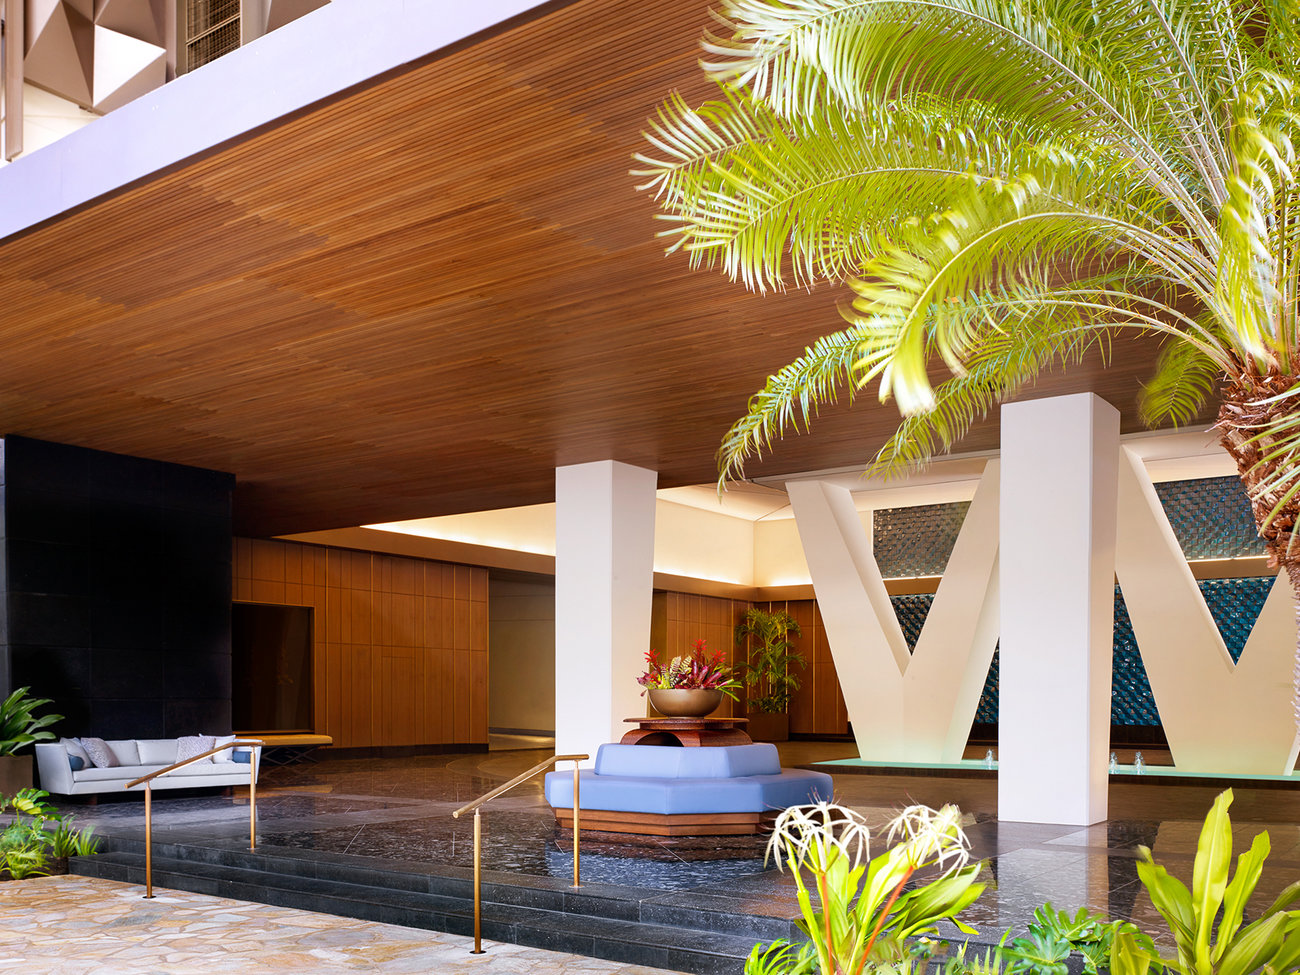 Ritz-Carlton Residences in Oahu